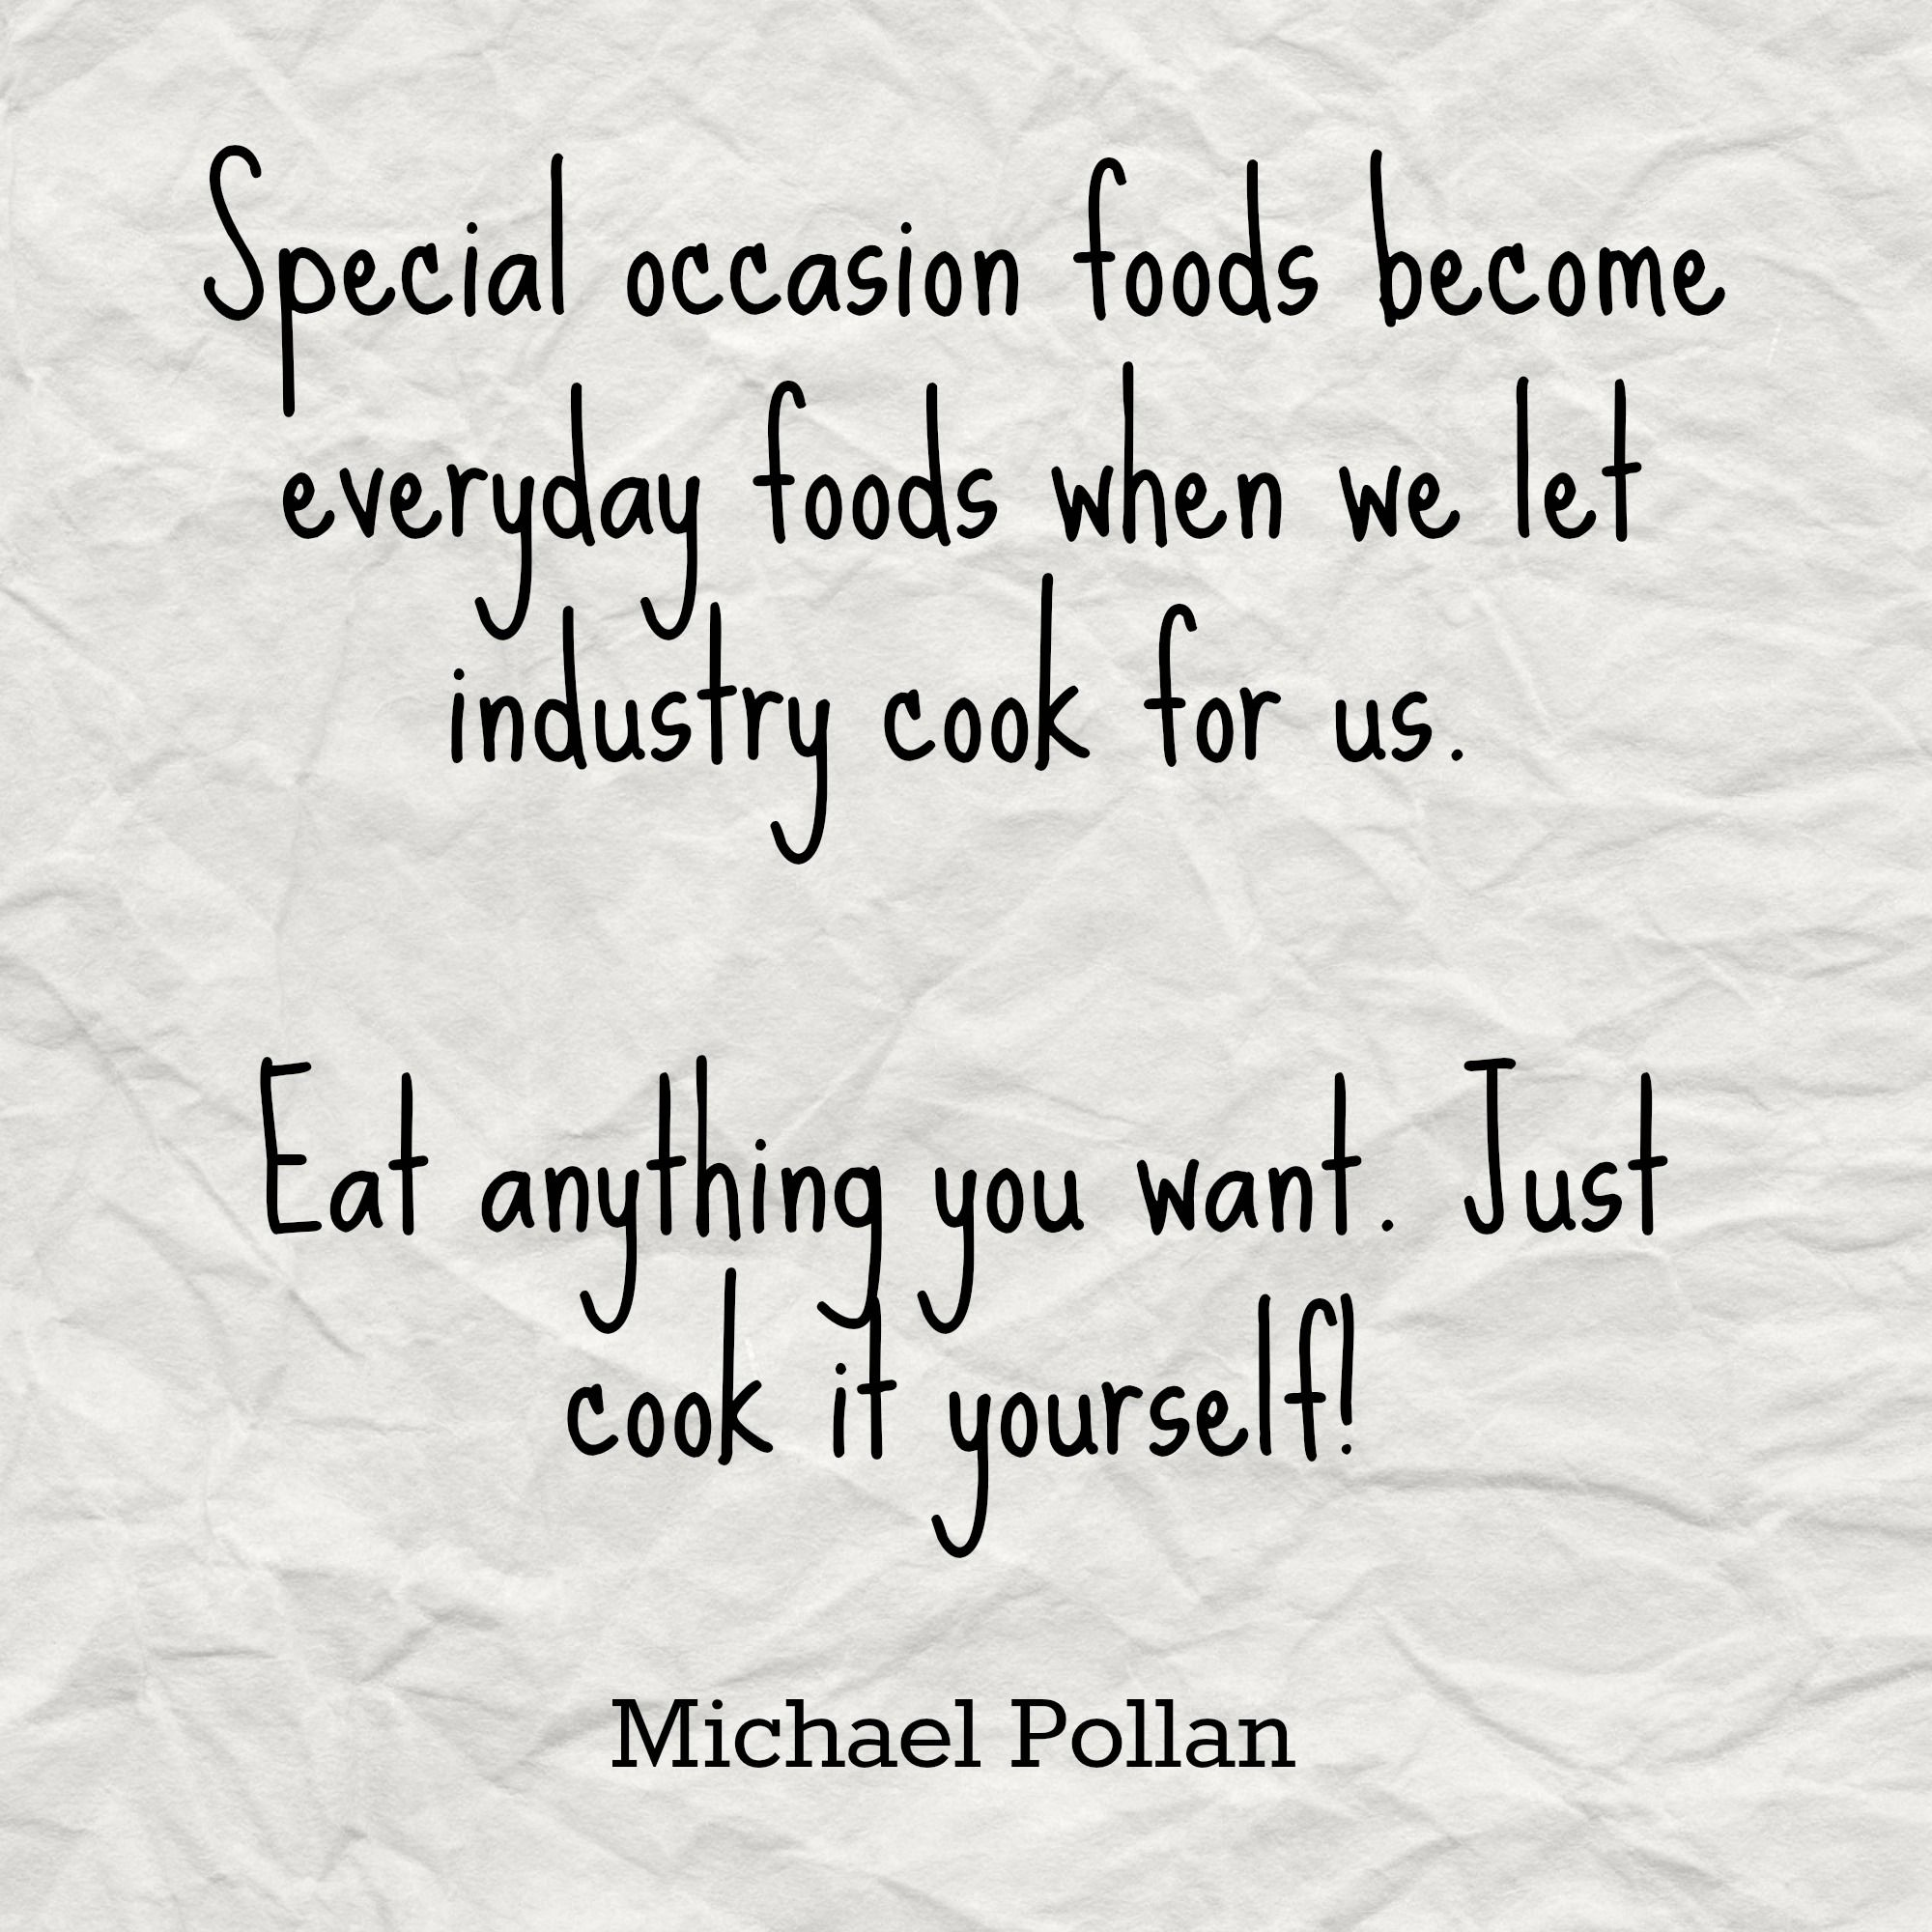 Rainbow Delicious Seasonal And Colorful Recipe Inspiration Michael Pollan 100 Days Of Real Food Health And Wellness Quotes